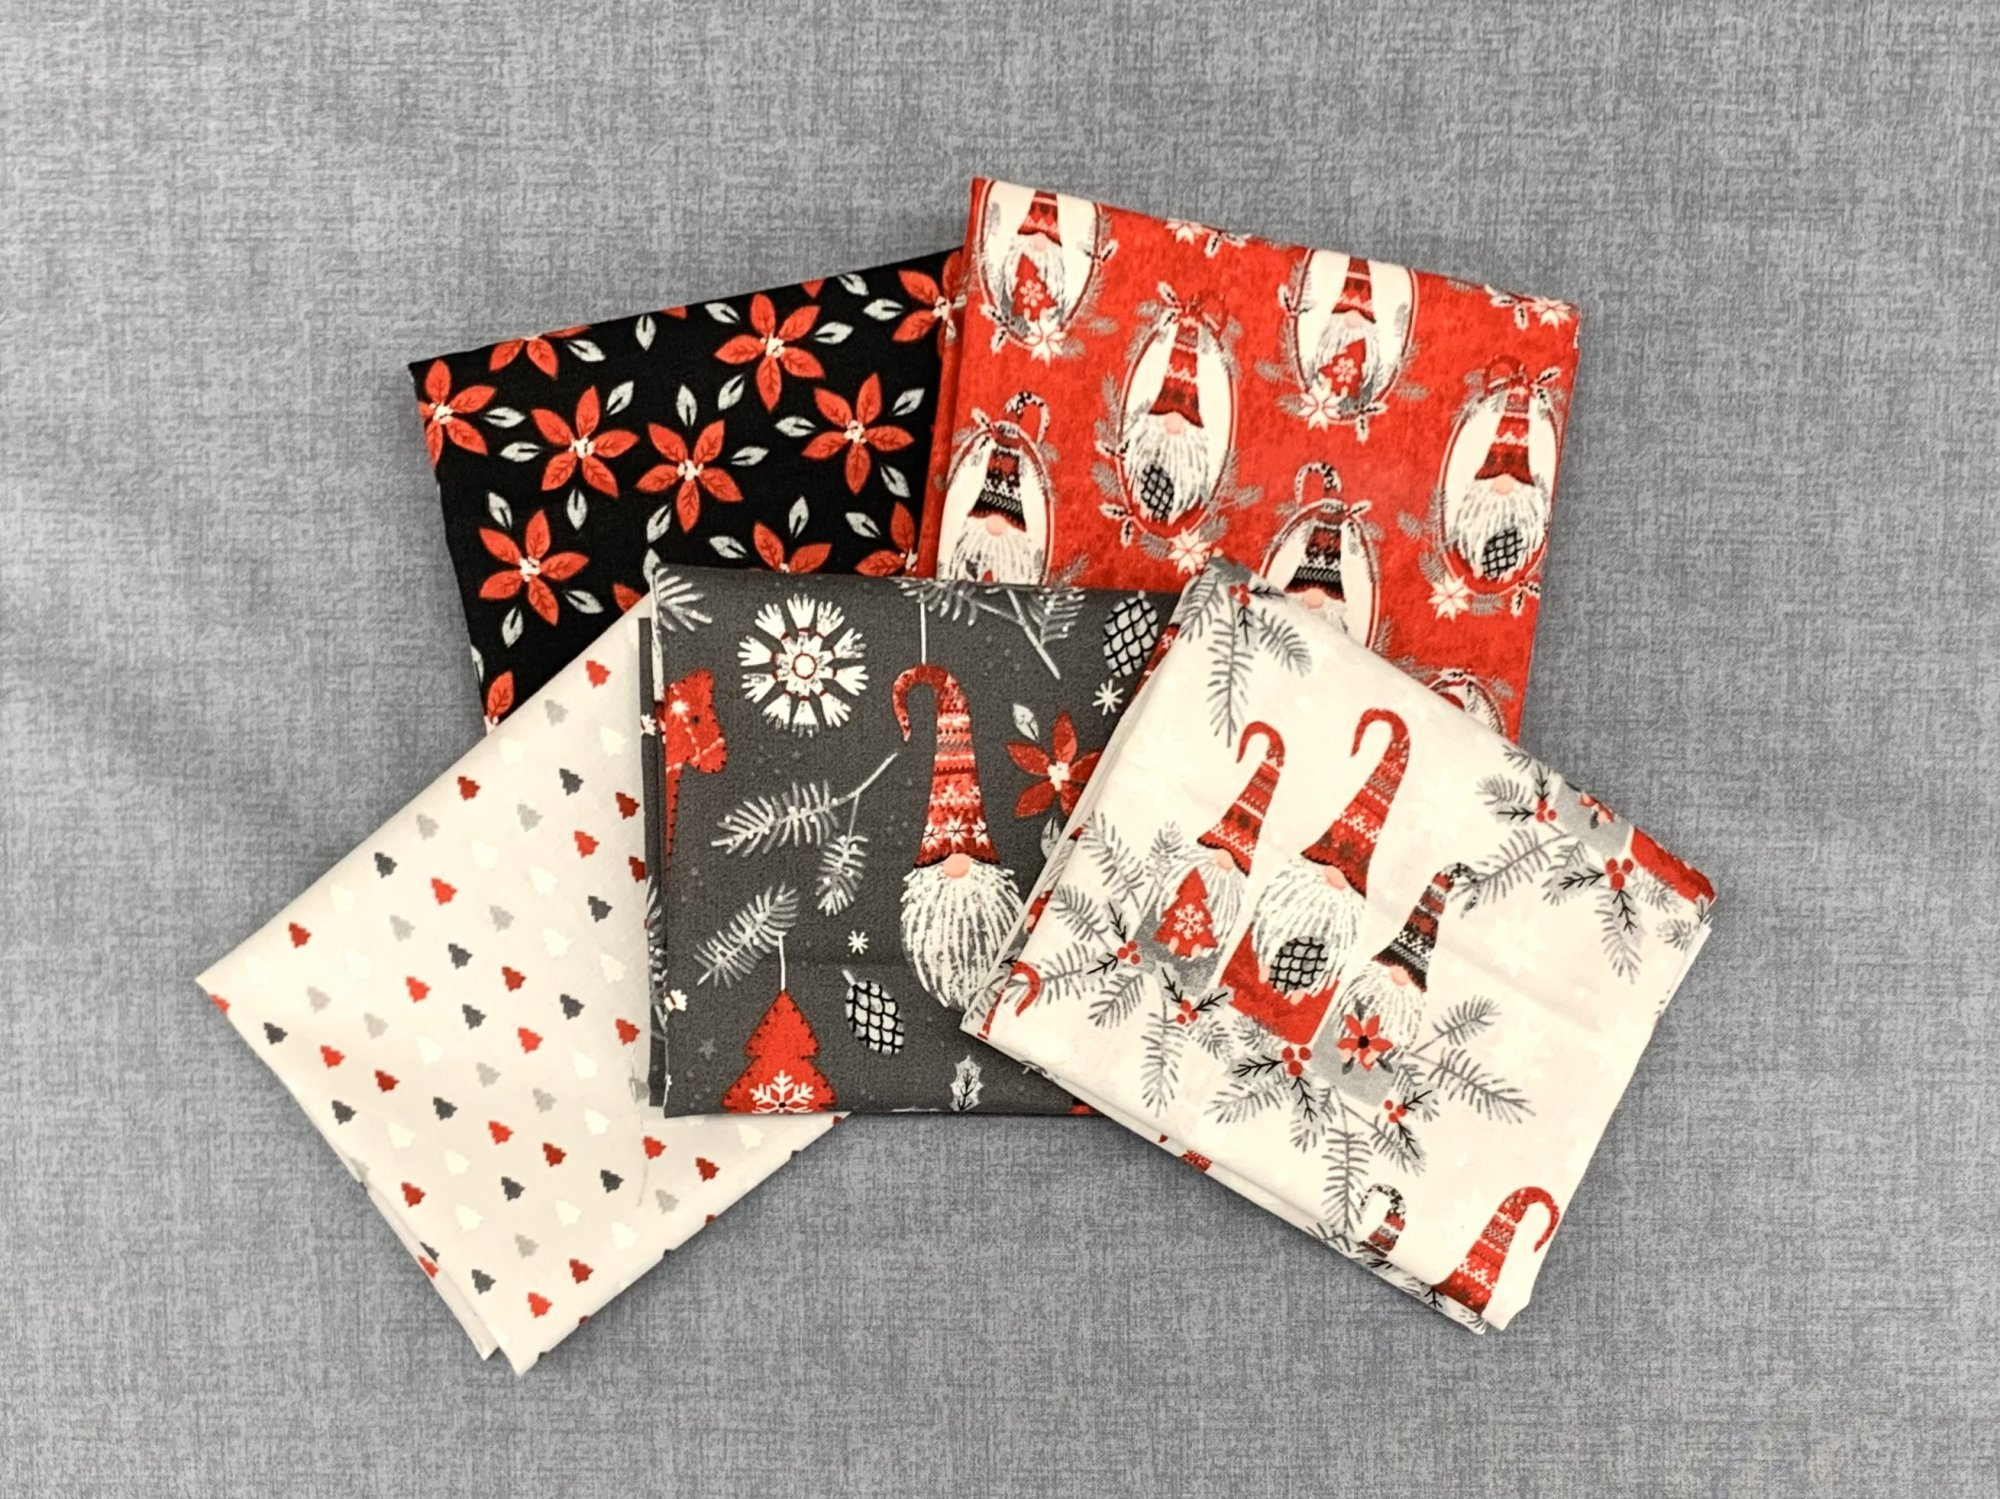 3 Wishes Hanging with My Gnomies 5pc Fat Quarter Bundle